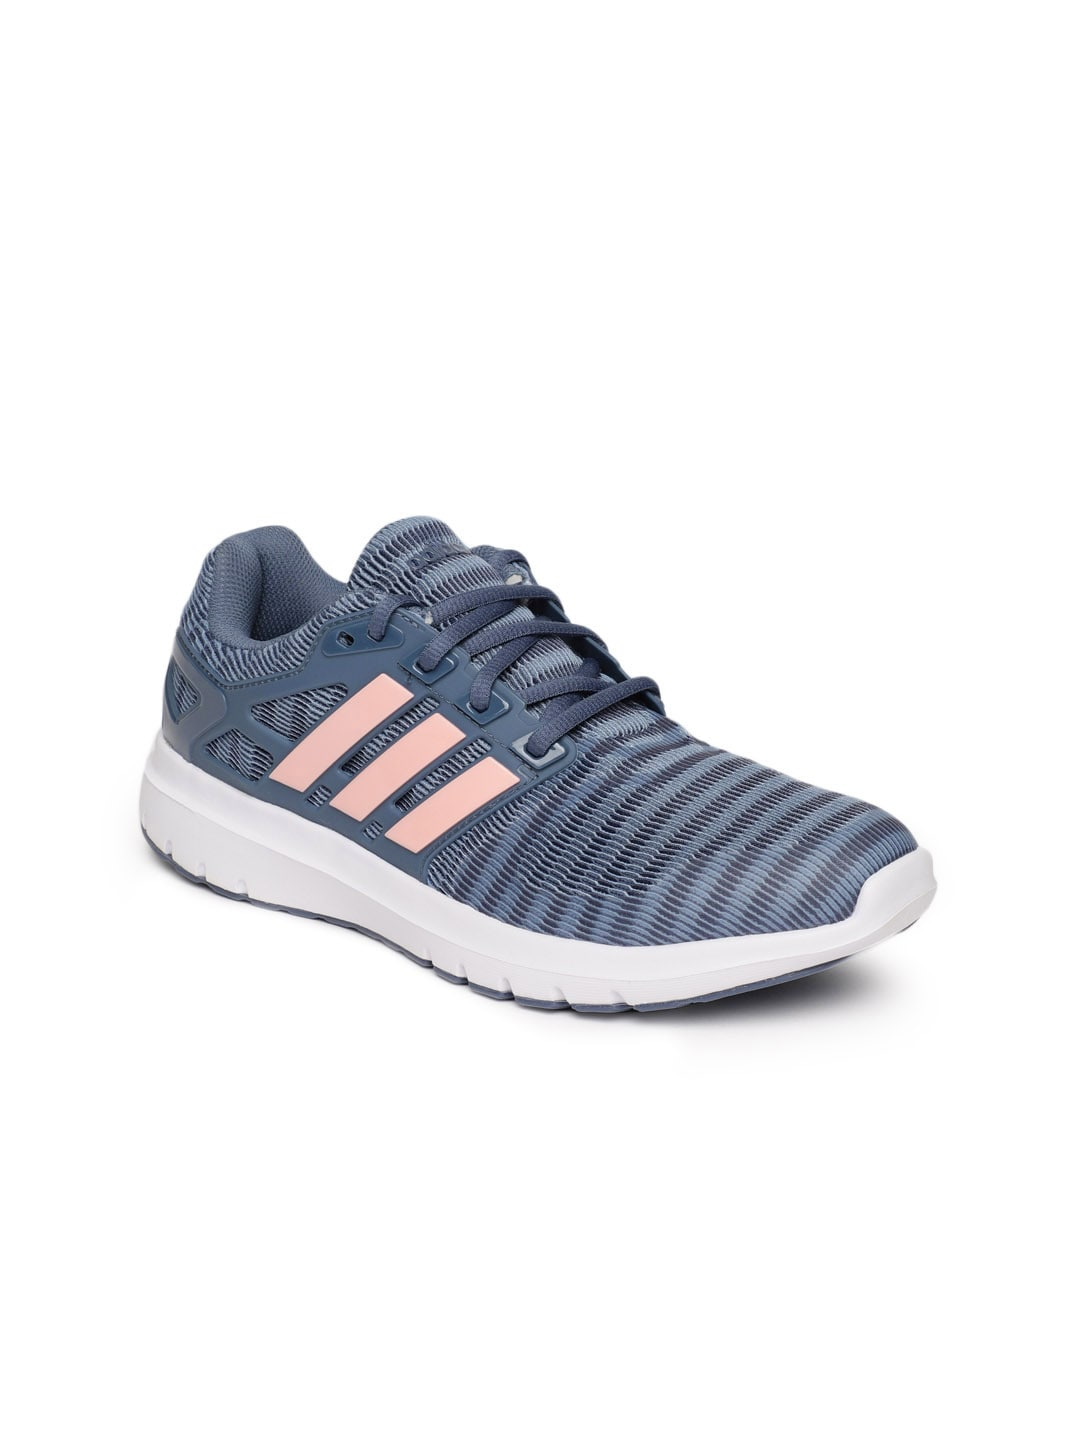 bc1ebf32594 Adidas Shoes - Buy Adidas Shoes for Men   Women Online - Myntra